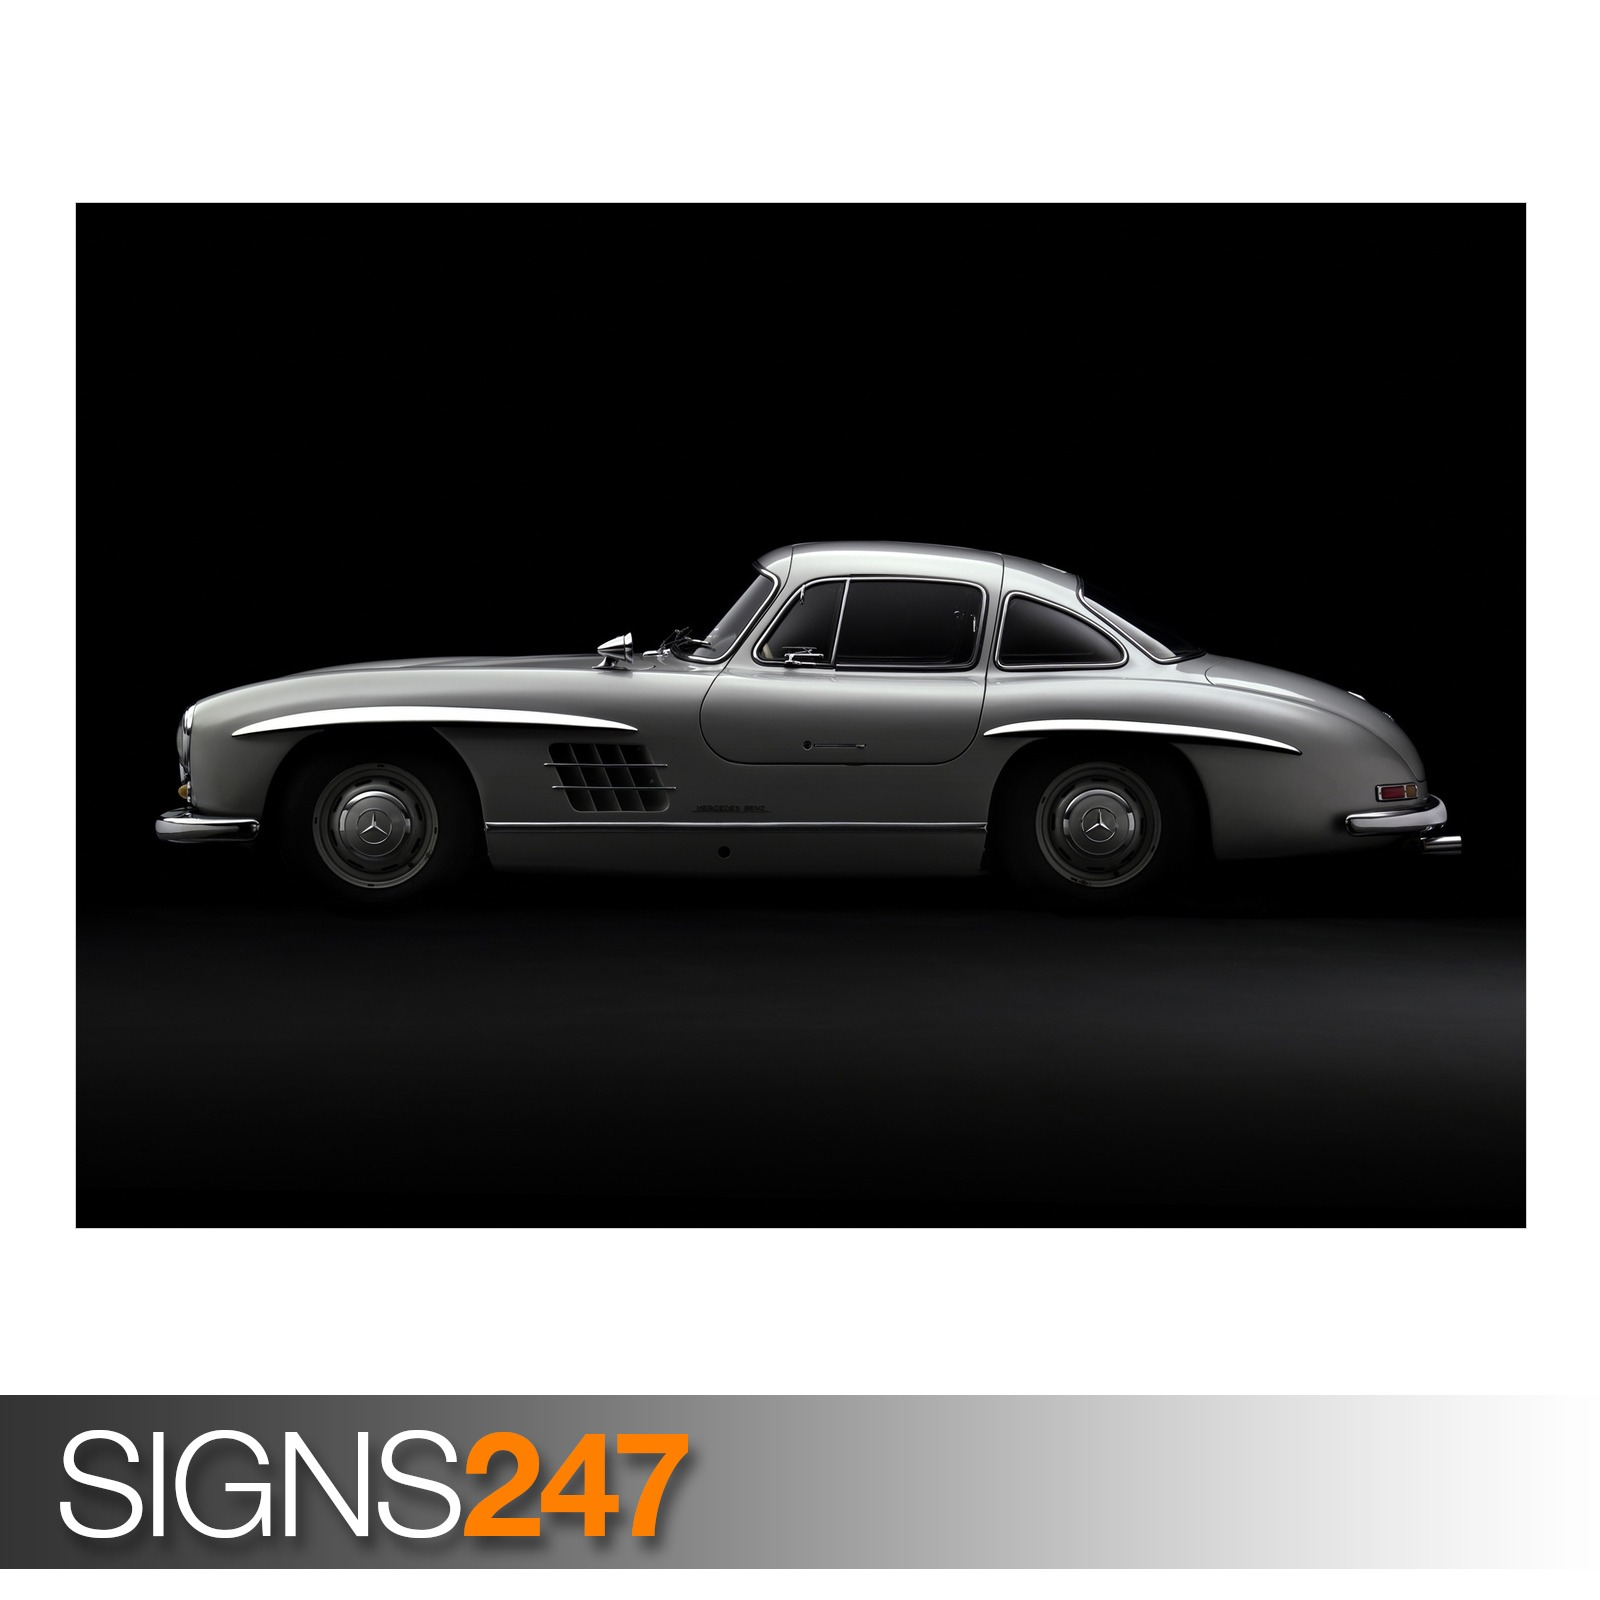 Mercedes benz 300sl gullwing aa913 classic car poster for Mercedes benz poster